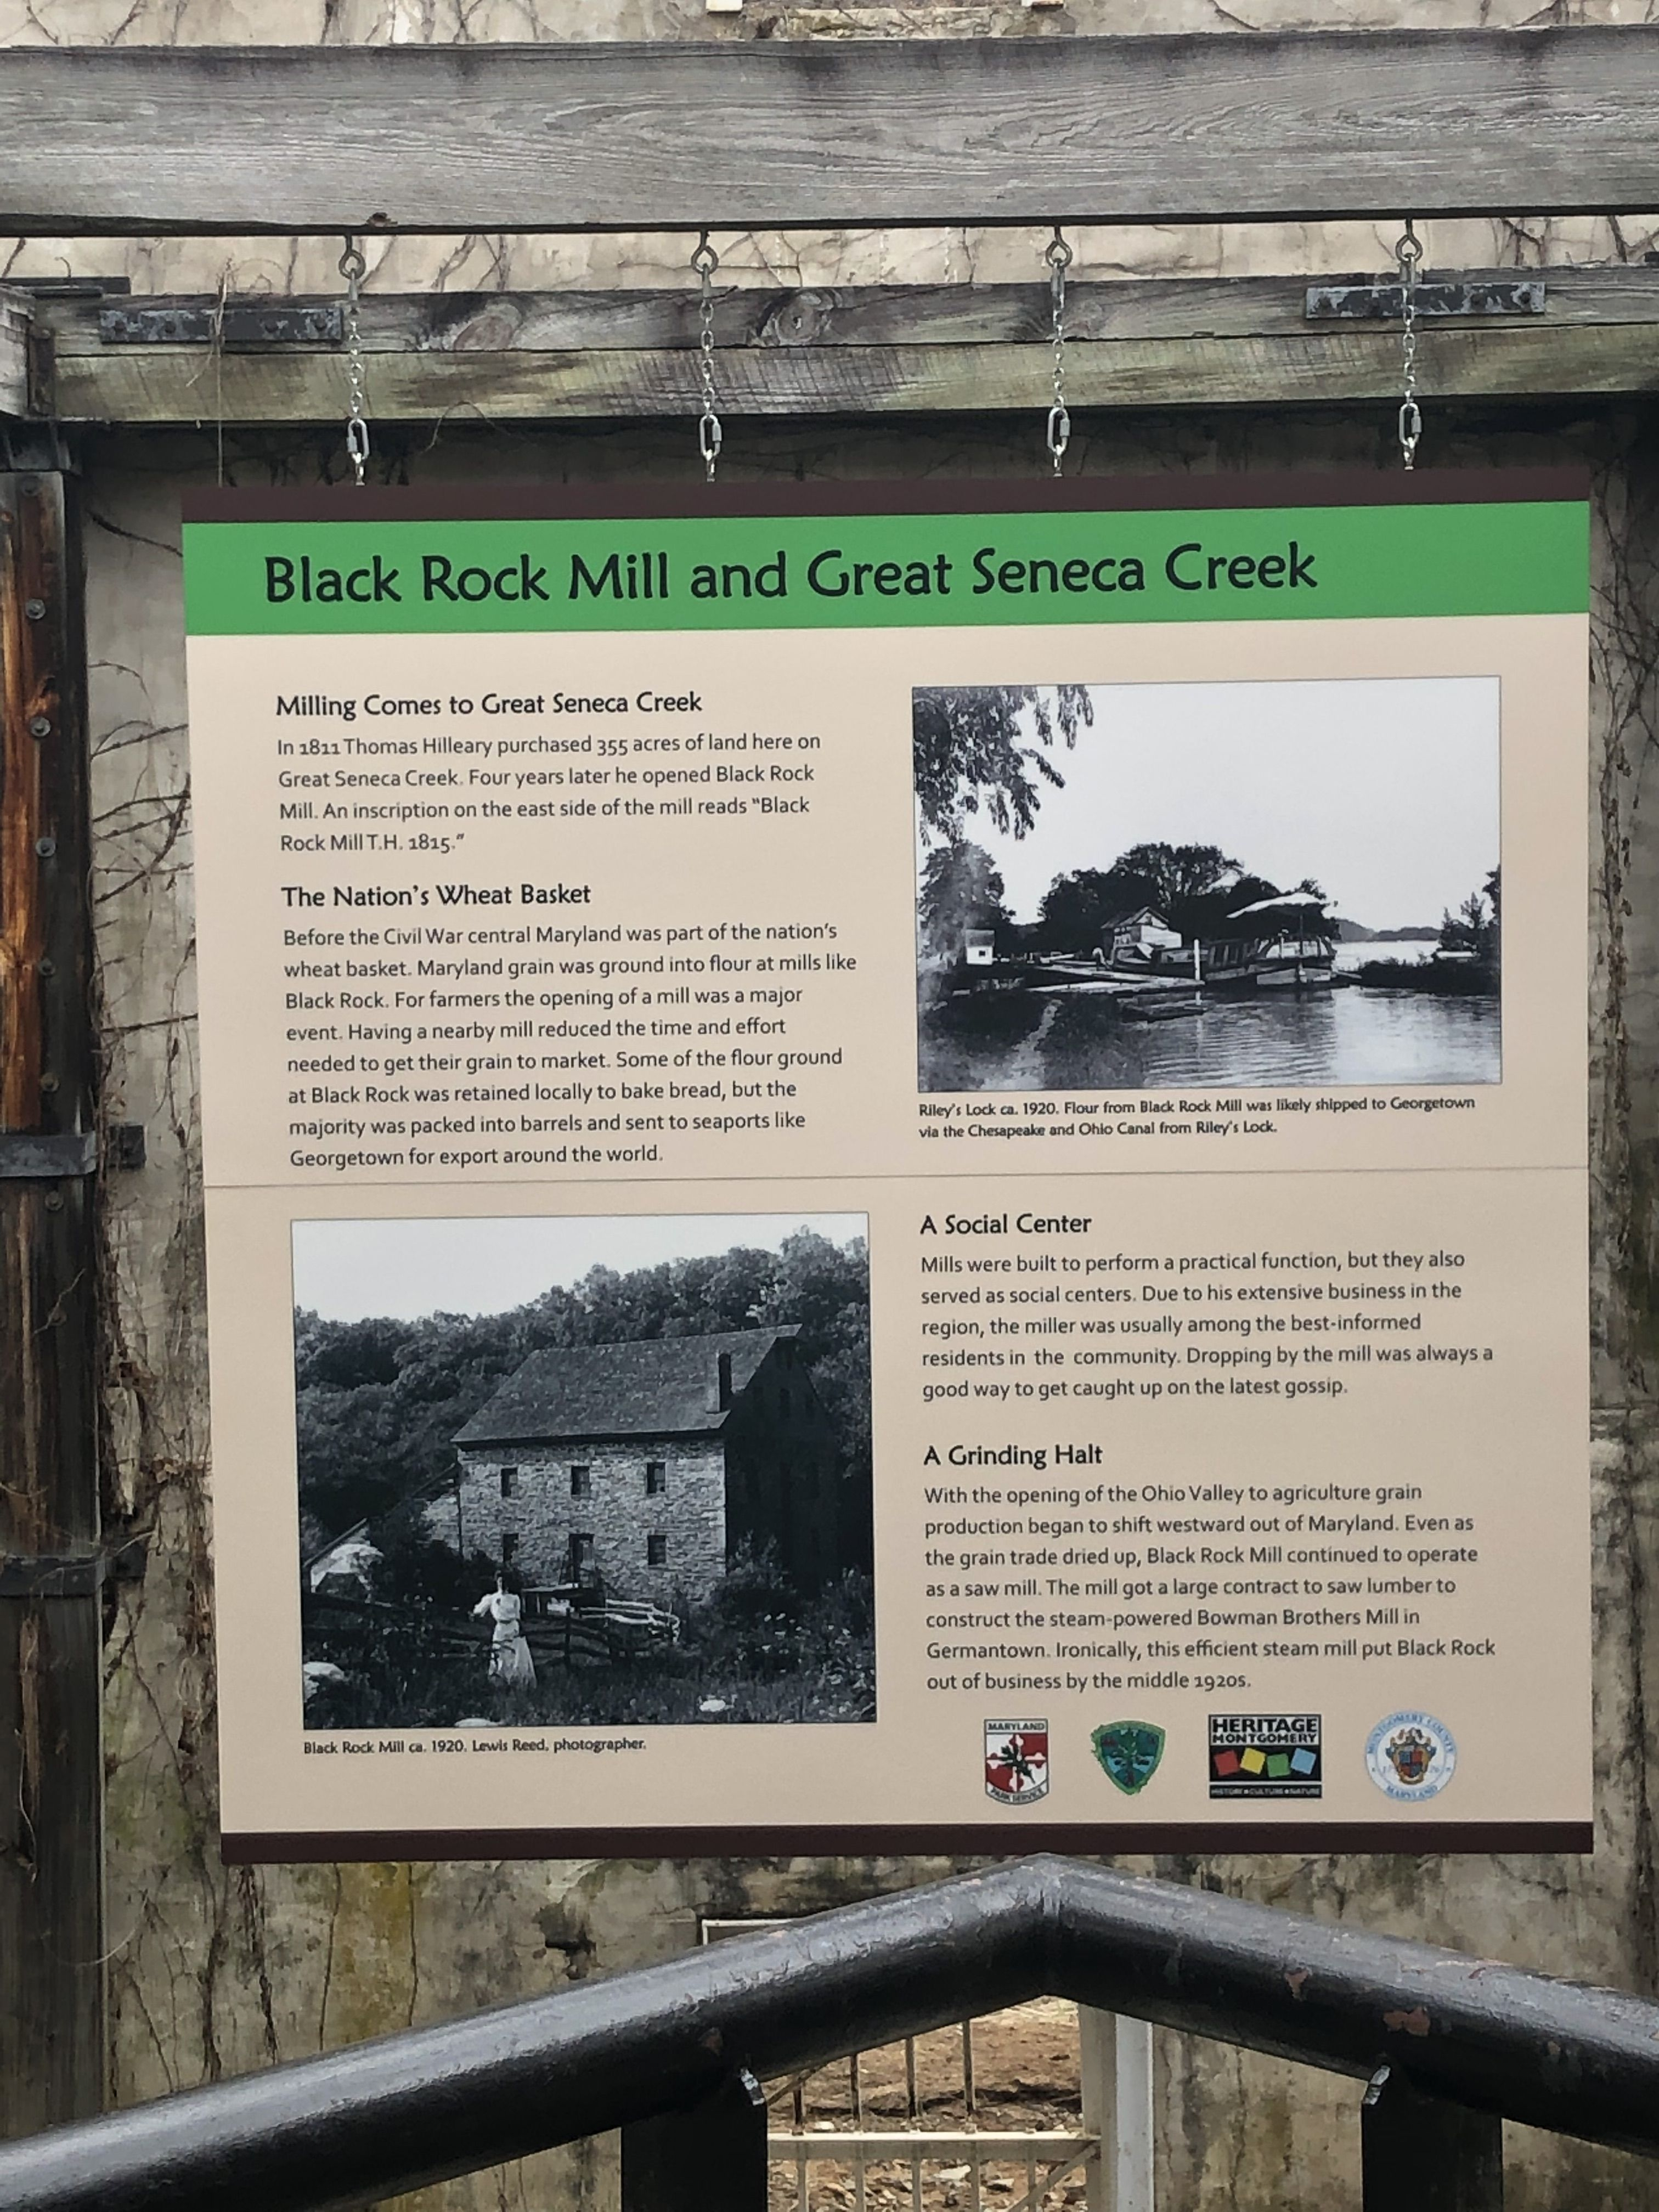 Black Rock Mill and Great Seneca Creek Marker